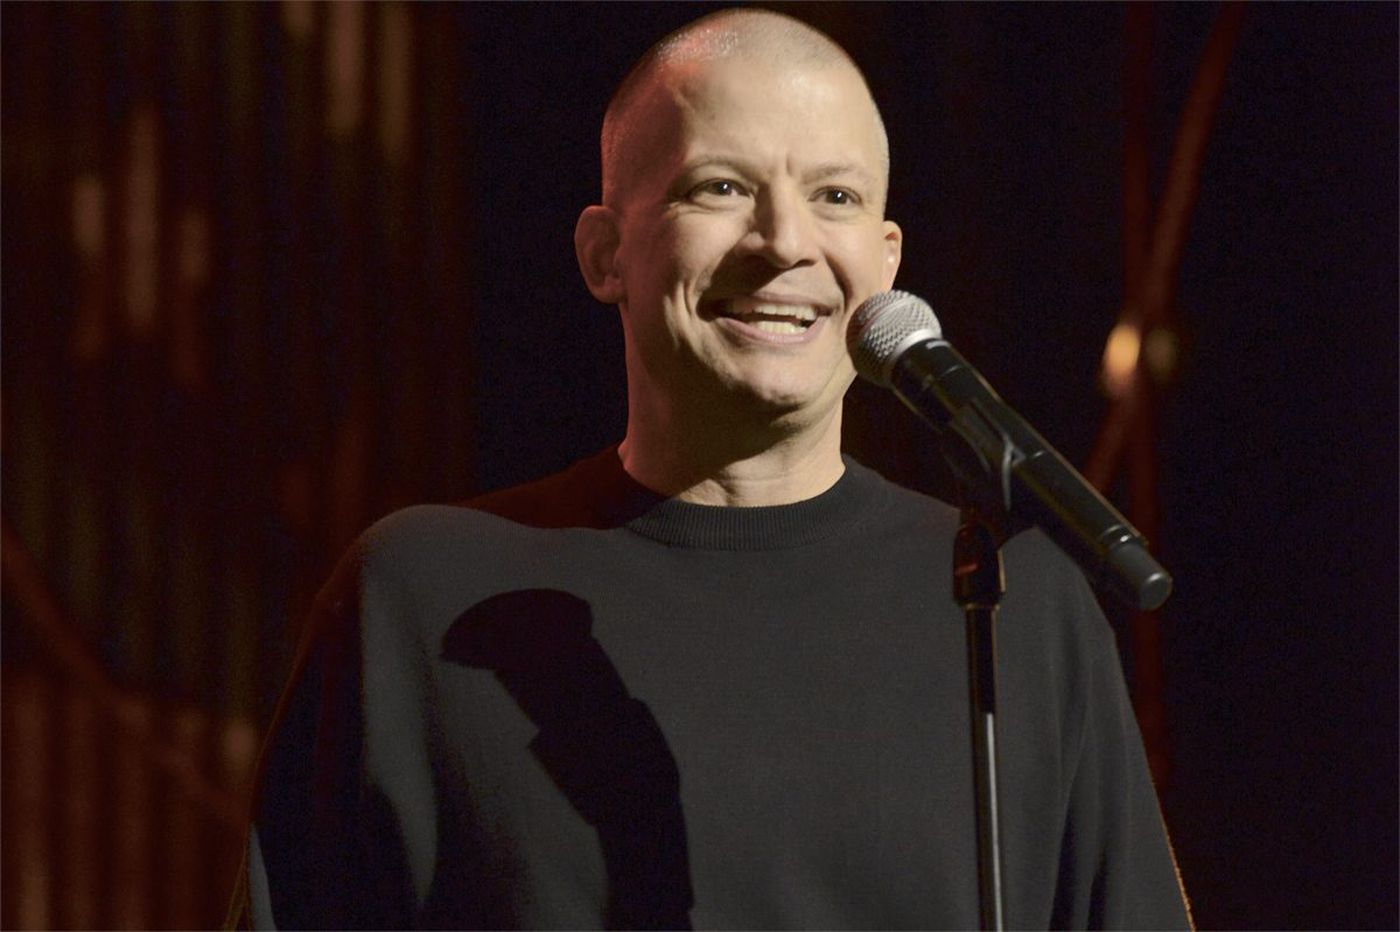 Jim Norton on Louis C.K.'s misconduct: 'We don't want to believe that we've been so wrong about a person'